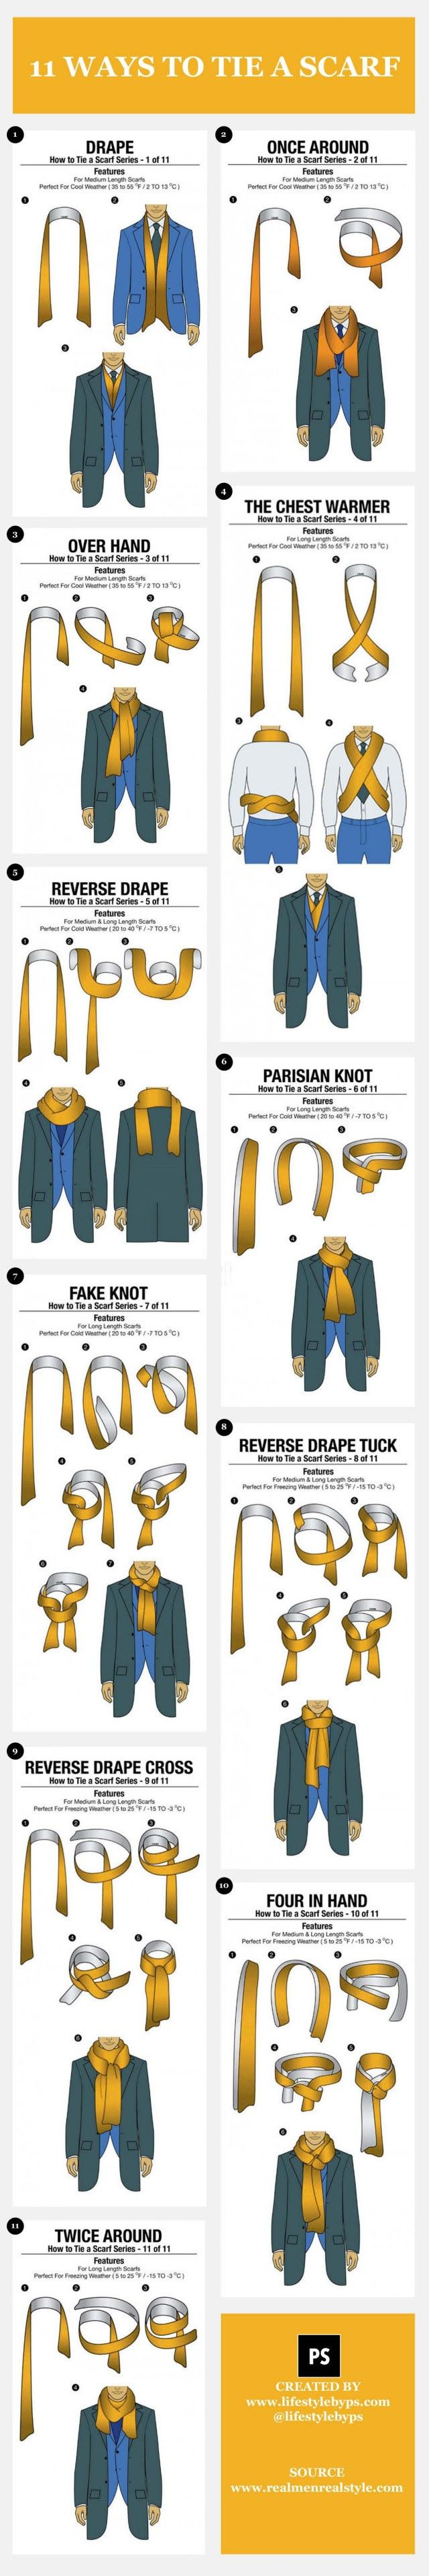 37 Best Strop Images On Pinterest Necktie Knots Tie And Ties How To A Trinity Knot Diagram Van Wijk 11 Simple Ways Scarf Infographic Is One Of The Infographics Created In Category Check Out Now